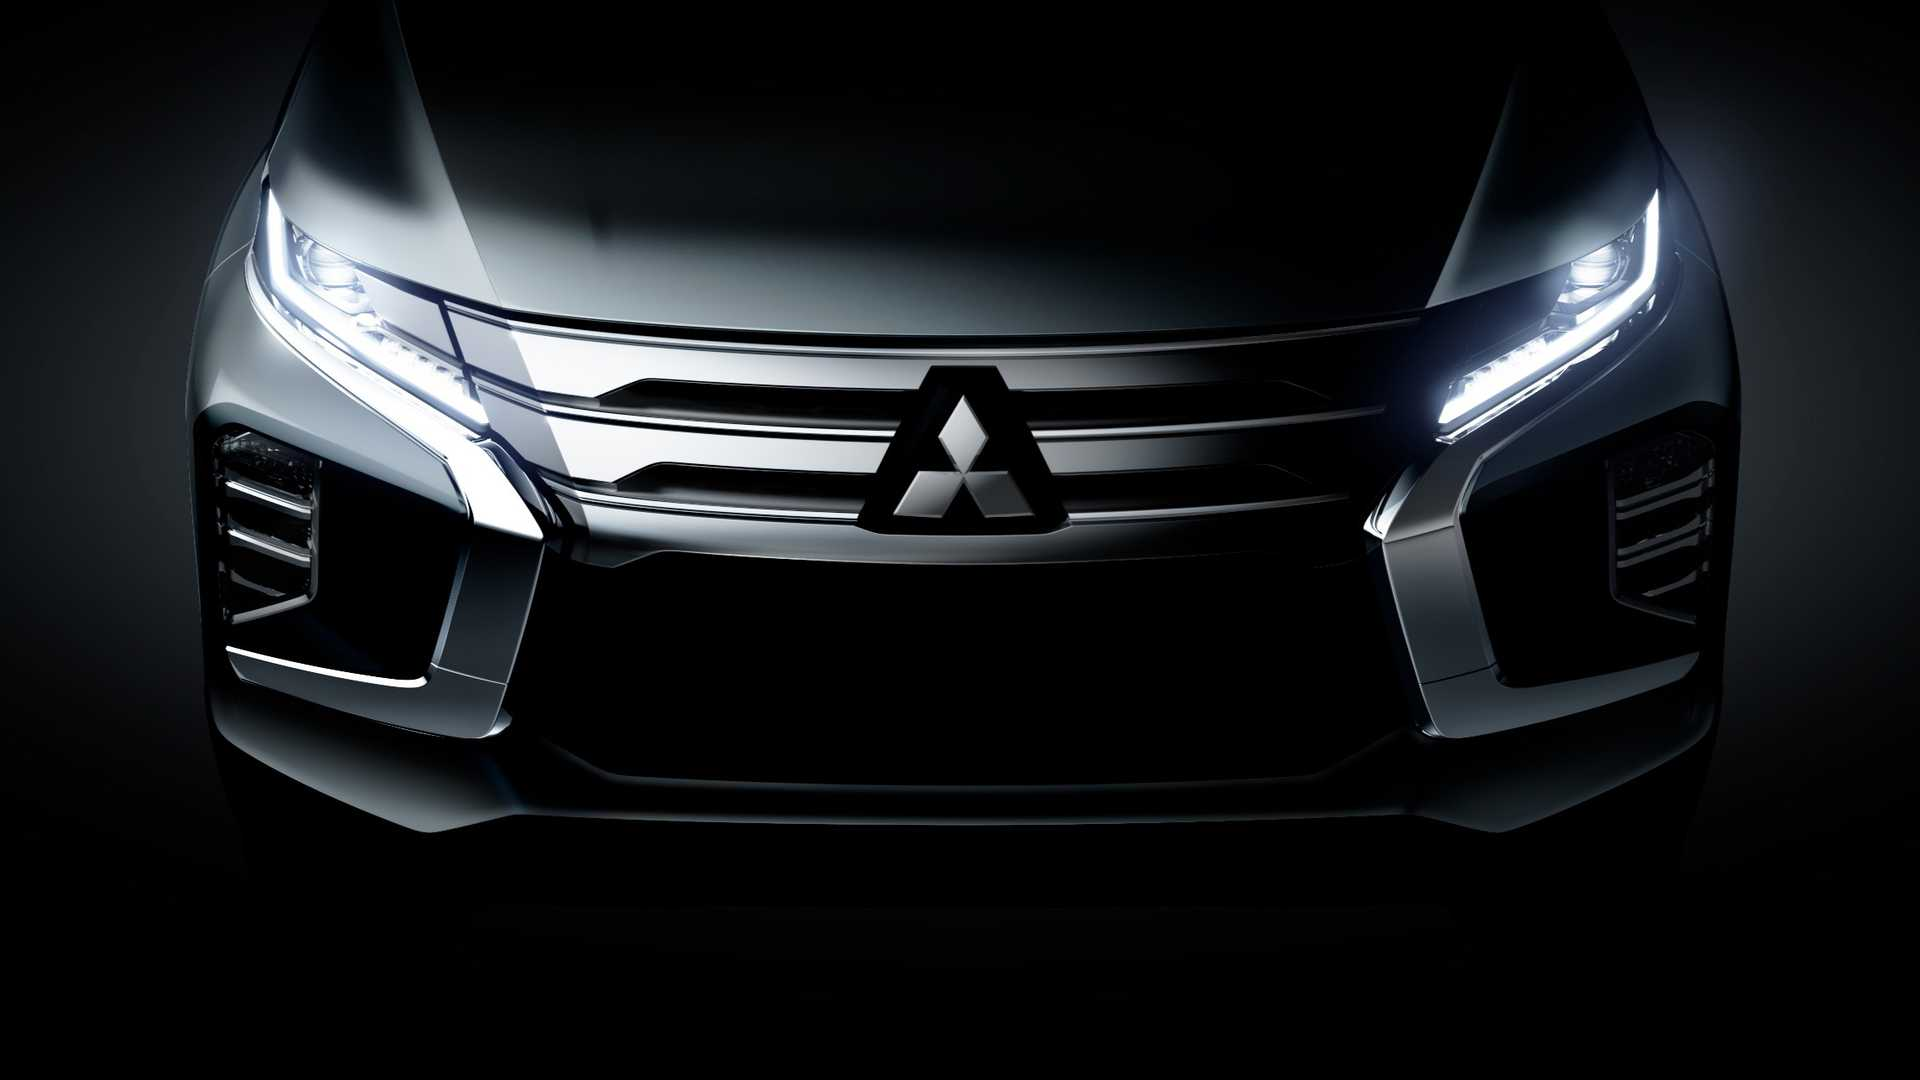 2019 Mitsubishi Montero Sport USA Release Date, Specs, Price >> 2020 Mitsubishi Pajero Sport Teased Ahead Of July 25 Debut